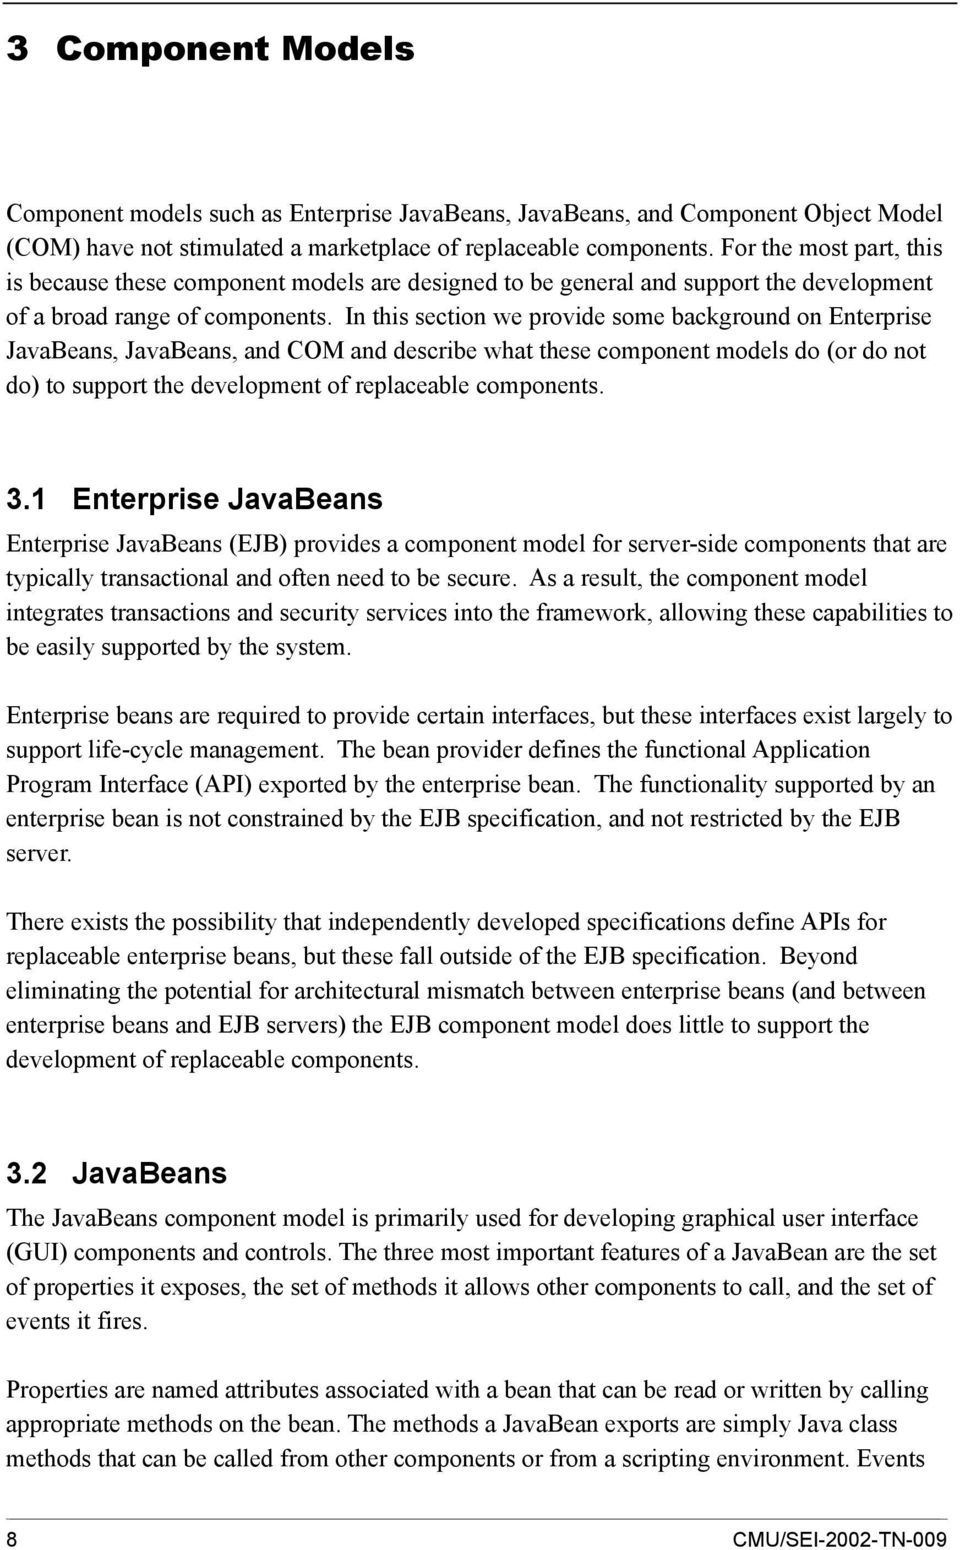 In this section we provide some background on Enterprise JavaBeans, JavaBeans, and COM and describe what these component models do (or do not do) to support the development of replaceable components.